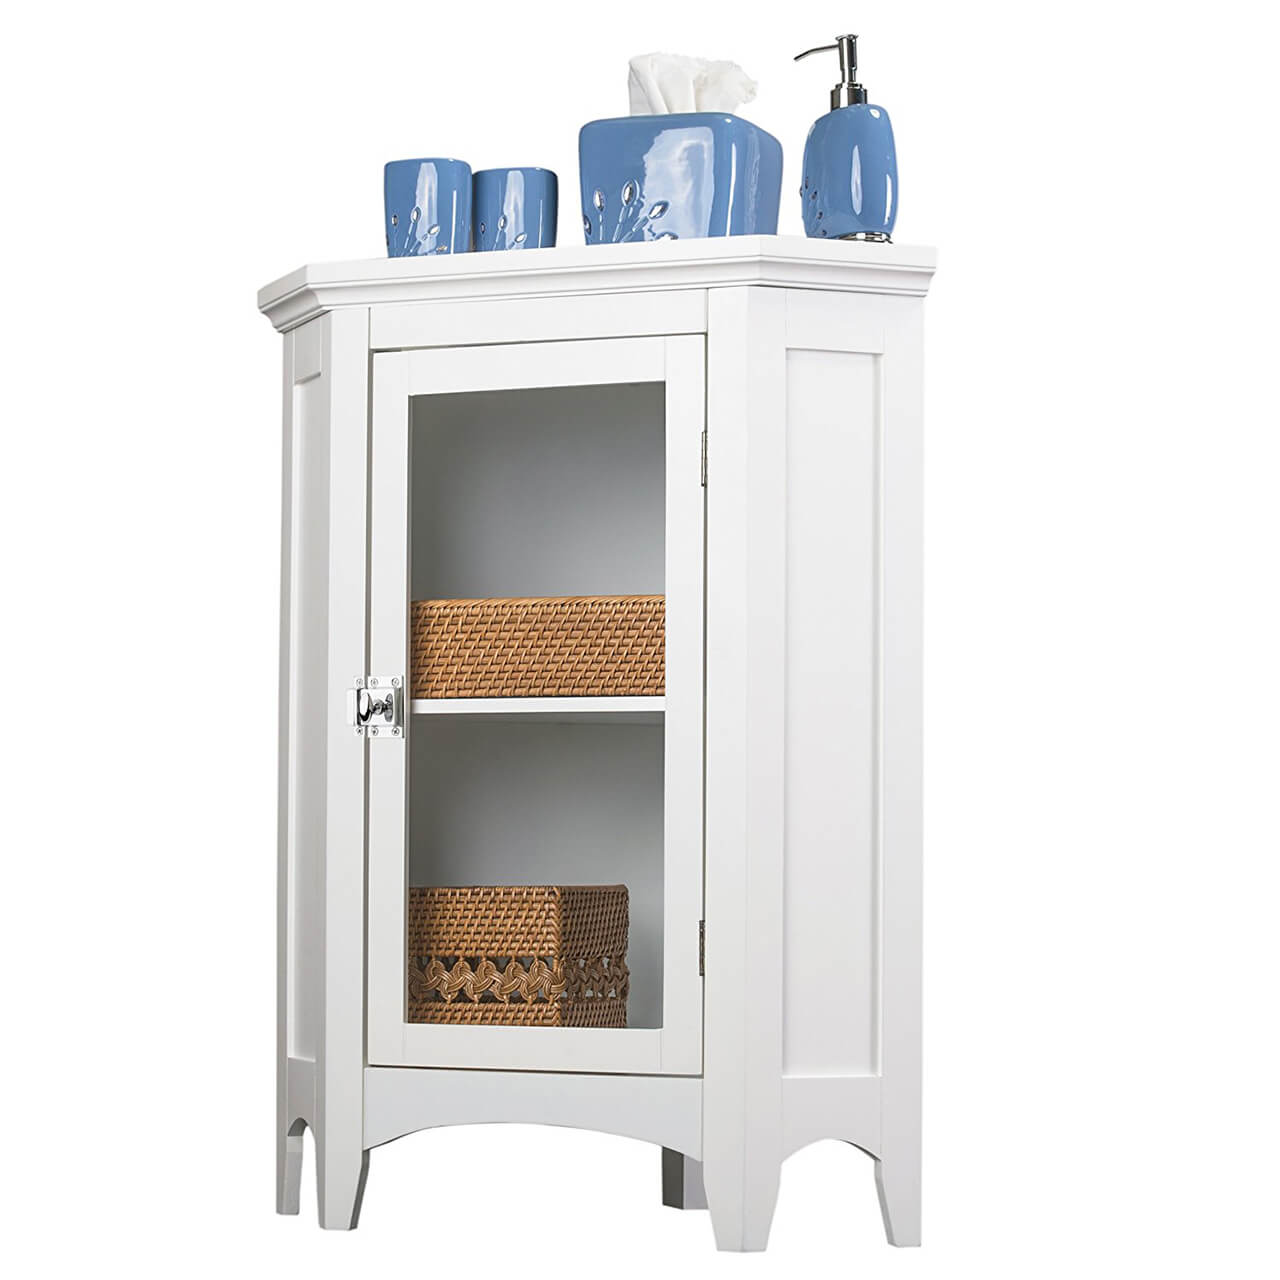 26 Best Bathroom Storage Cabinet Ideas For 2021